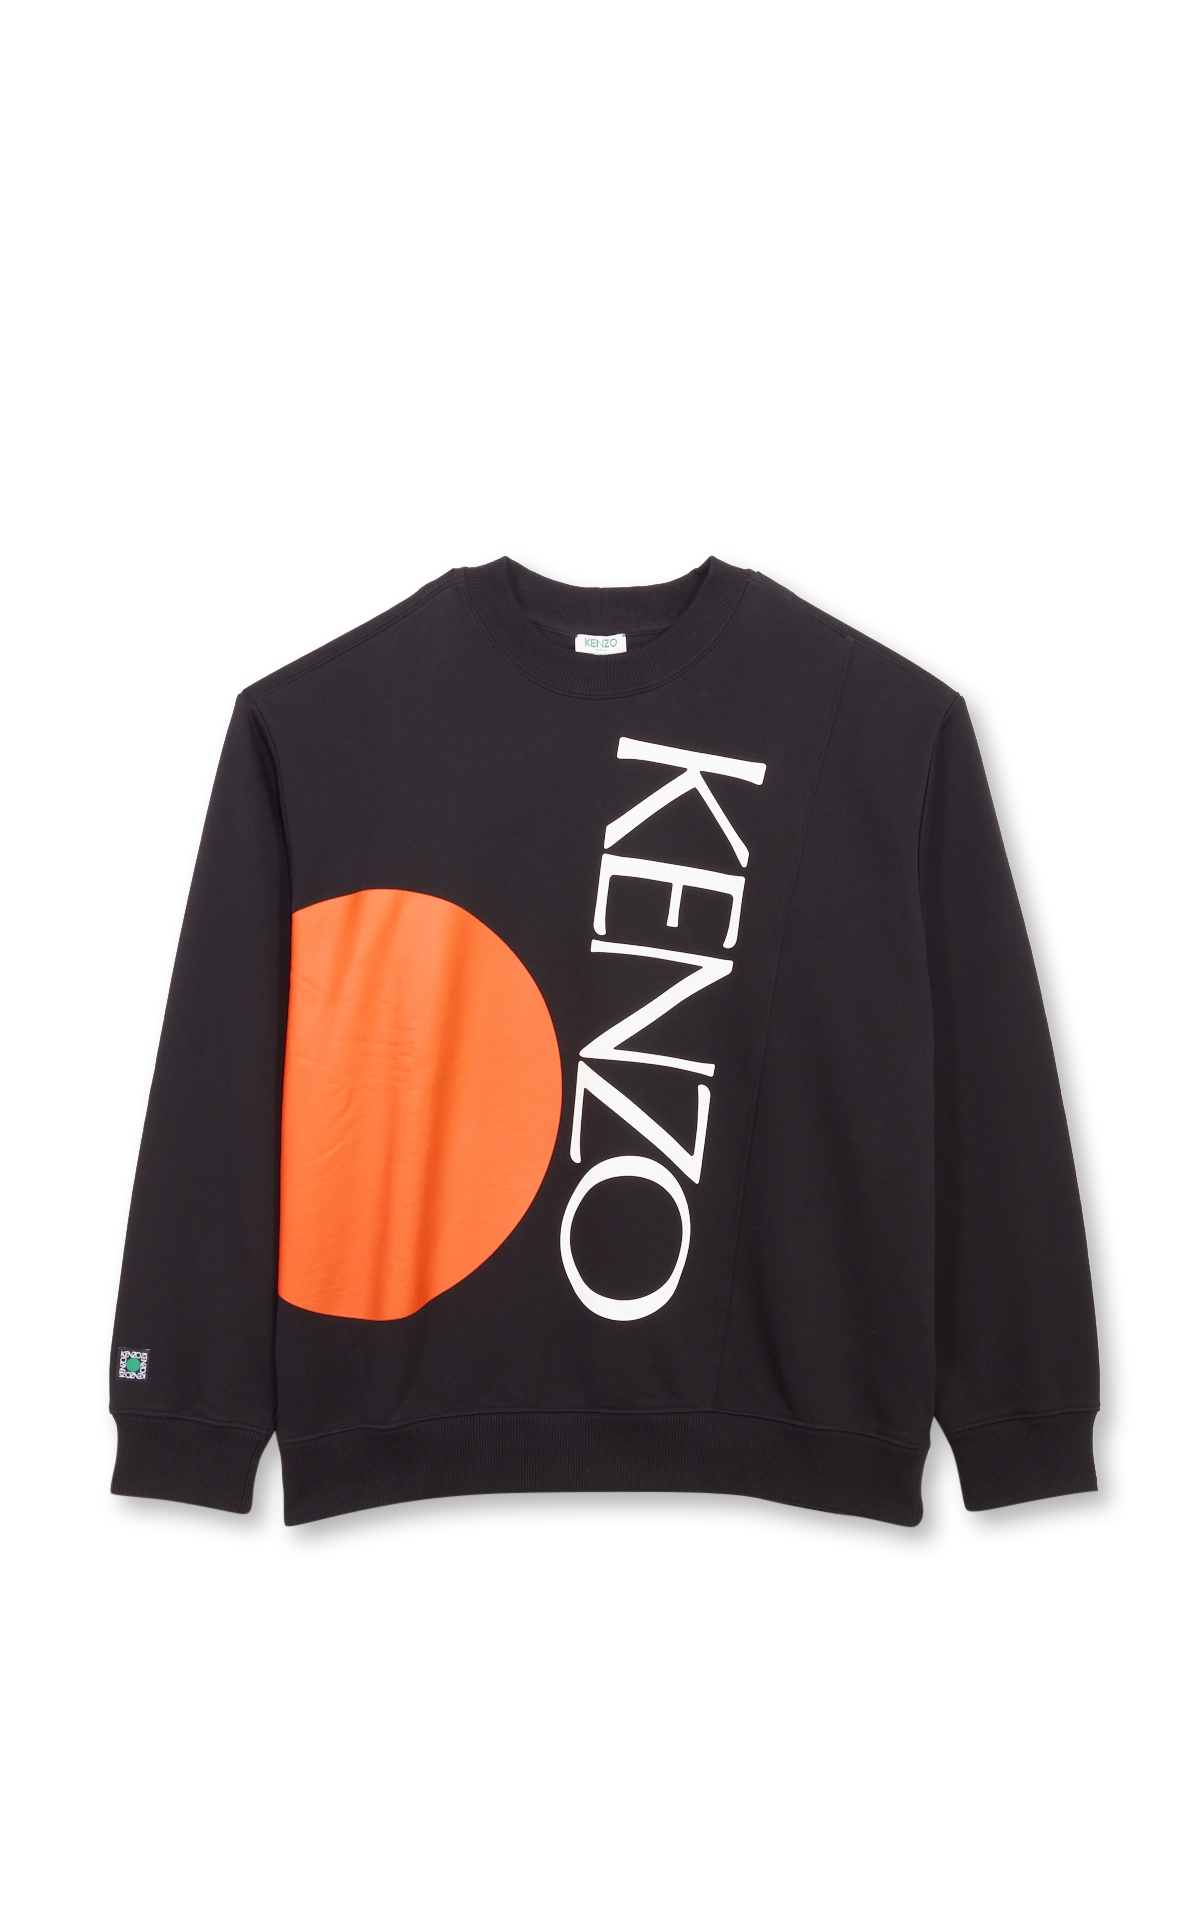 Kenzo Black and orange logo sweatshirt